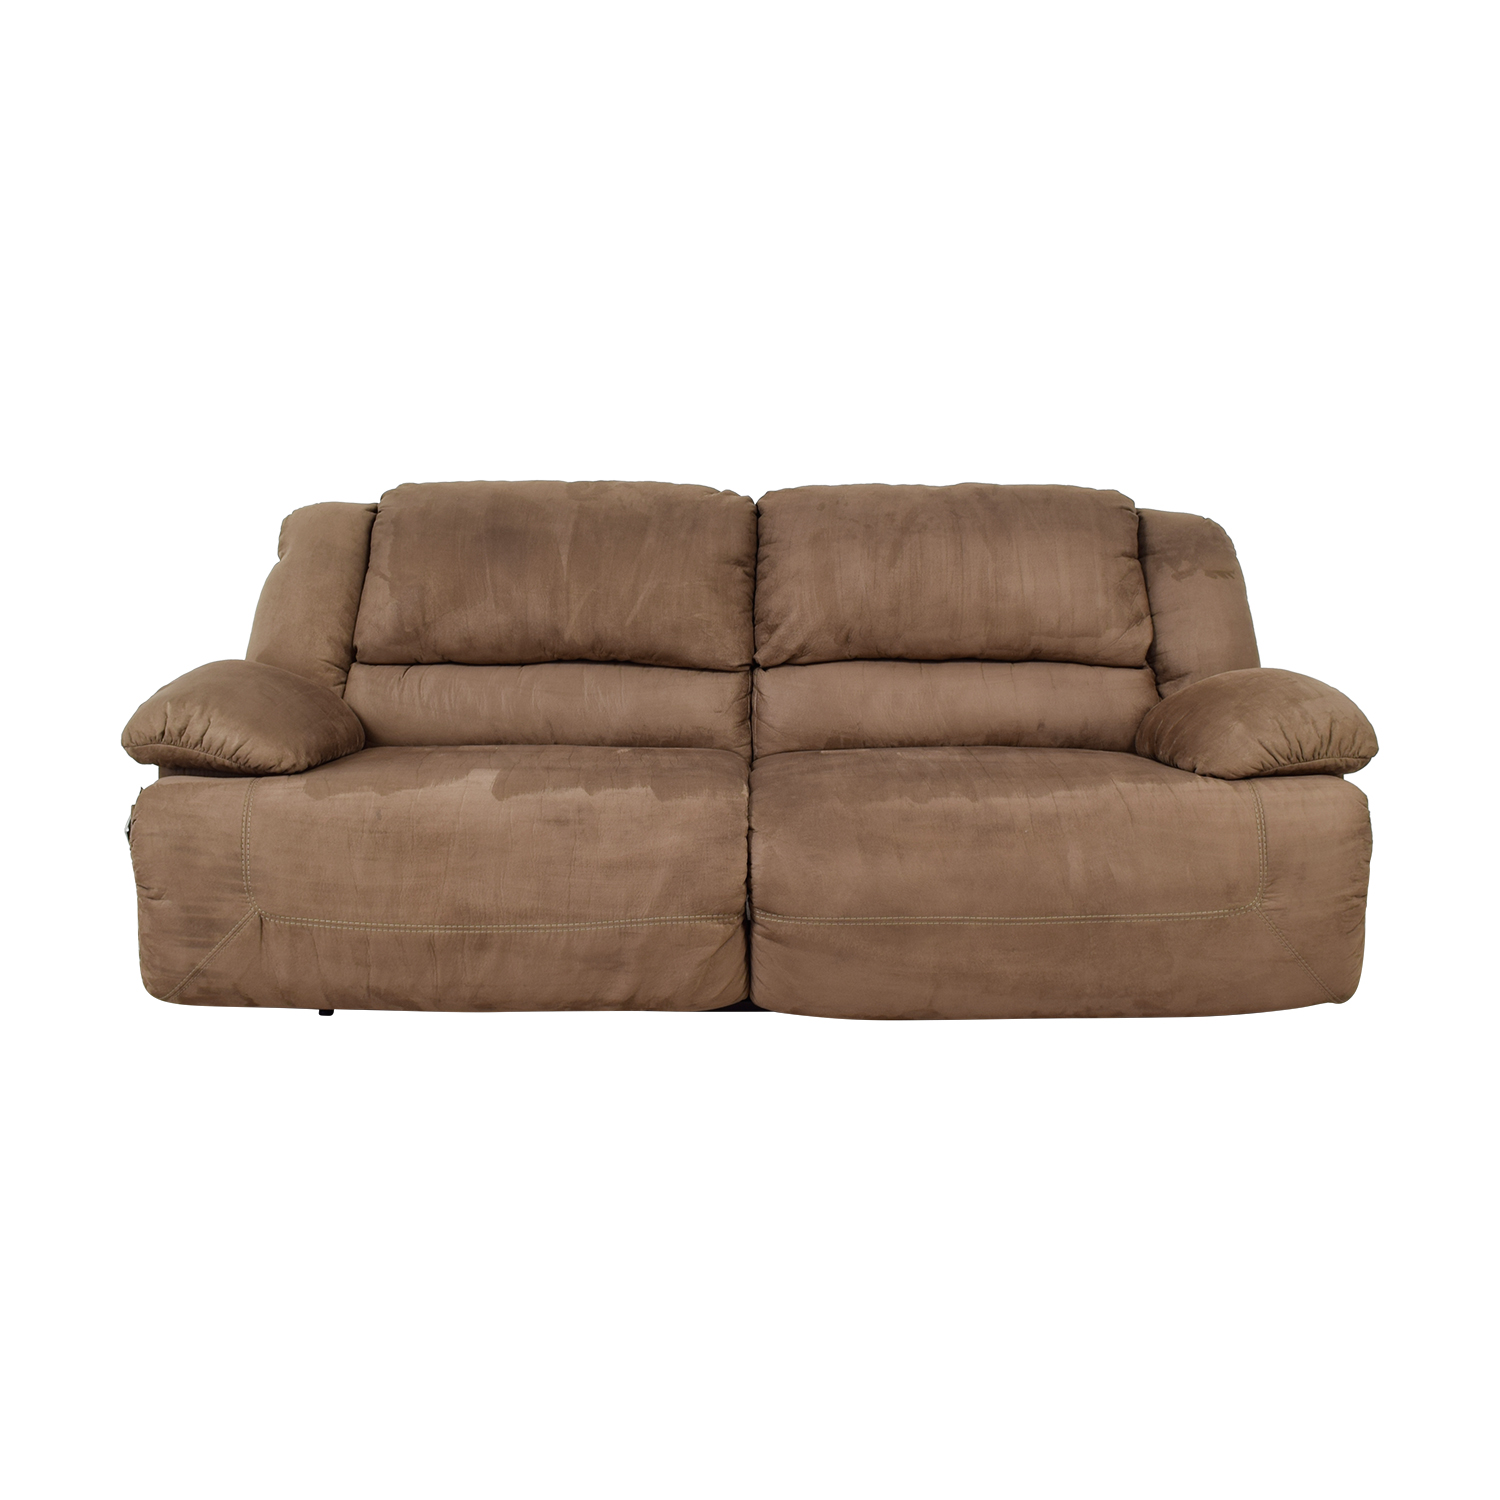 buy Ashley Furniture Mocha Reclining Sofa Ashley Furniture